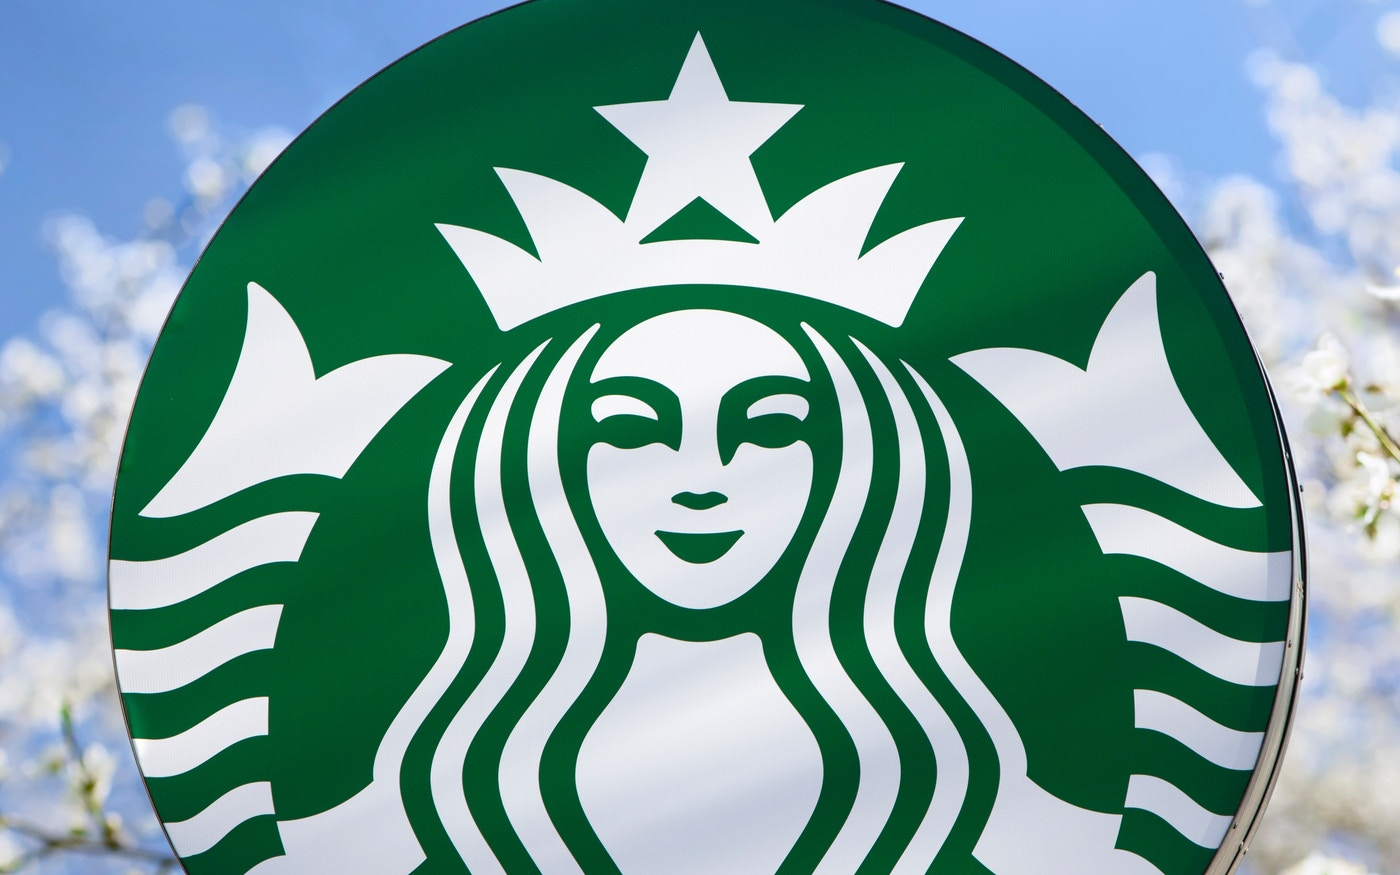 Updated Starbucks siren logo